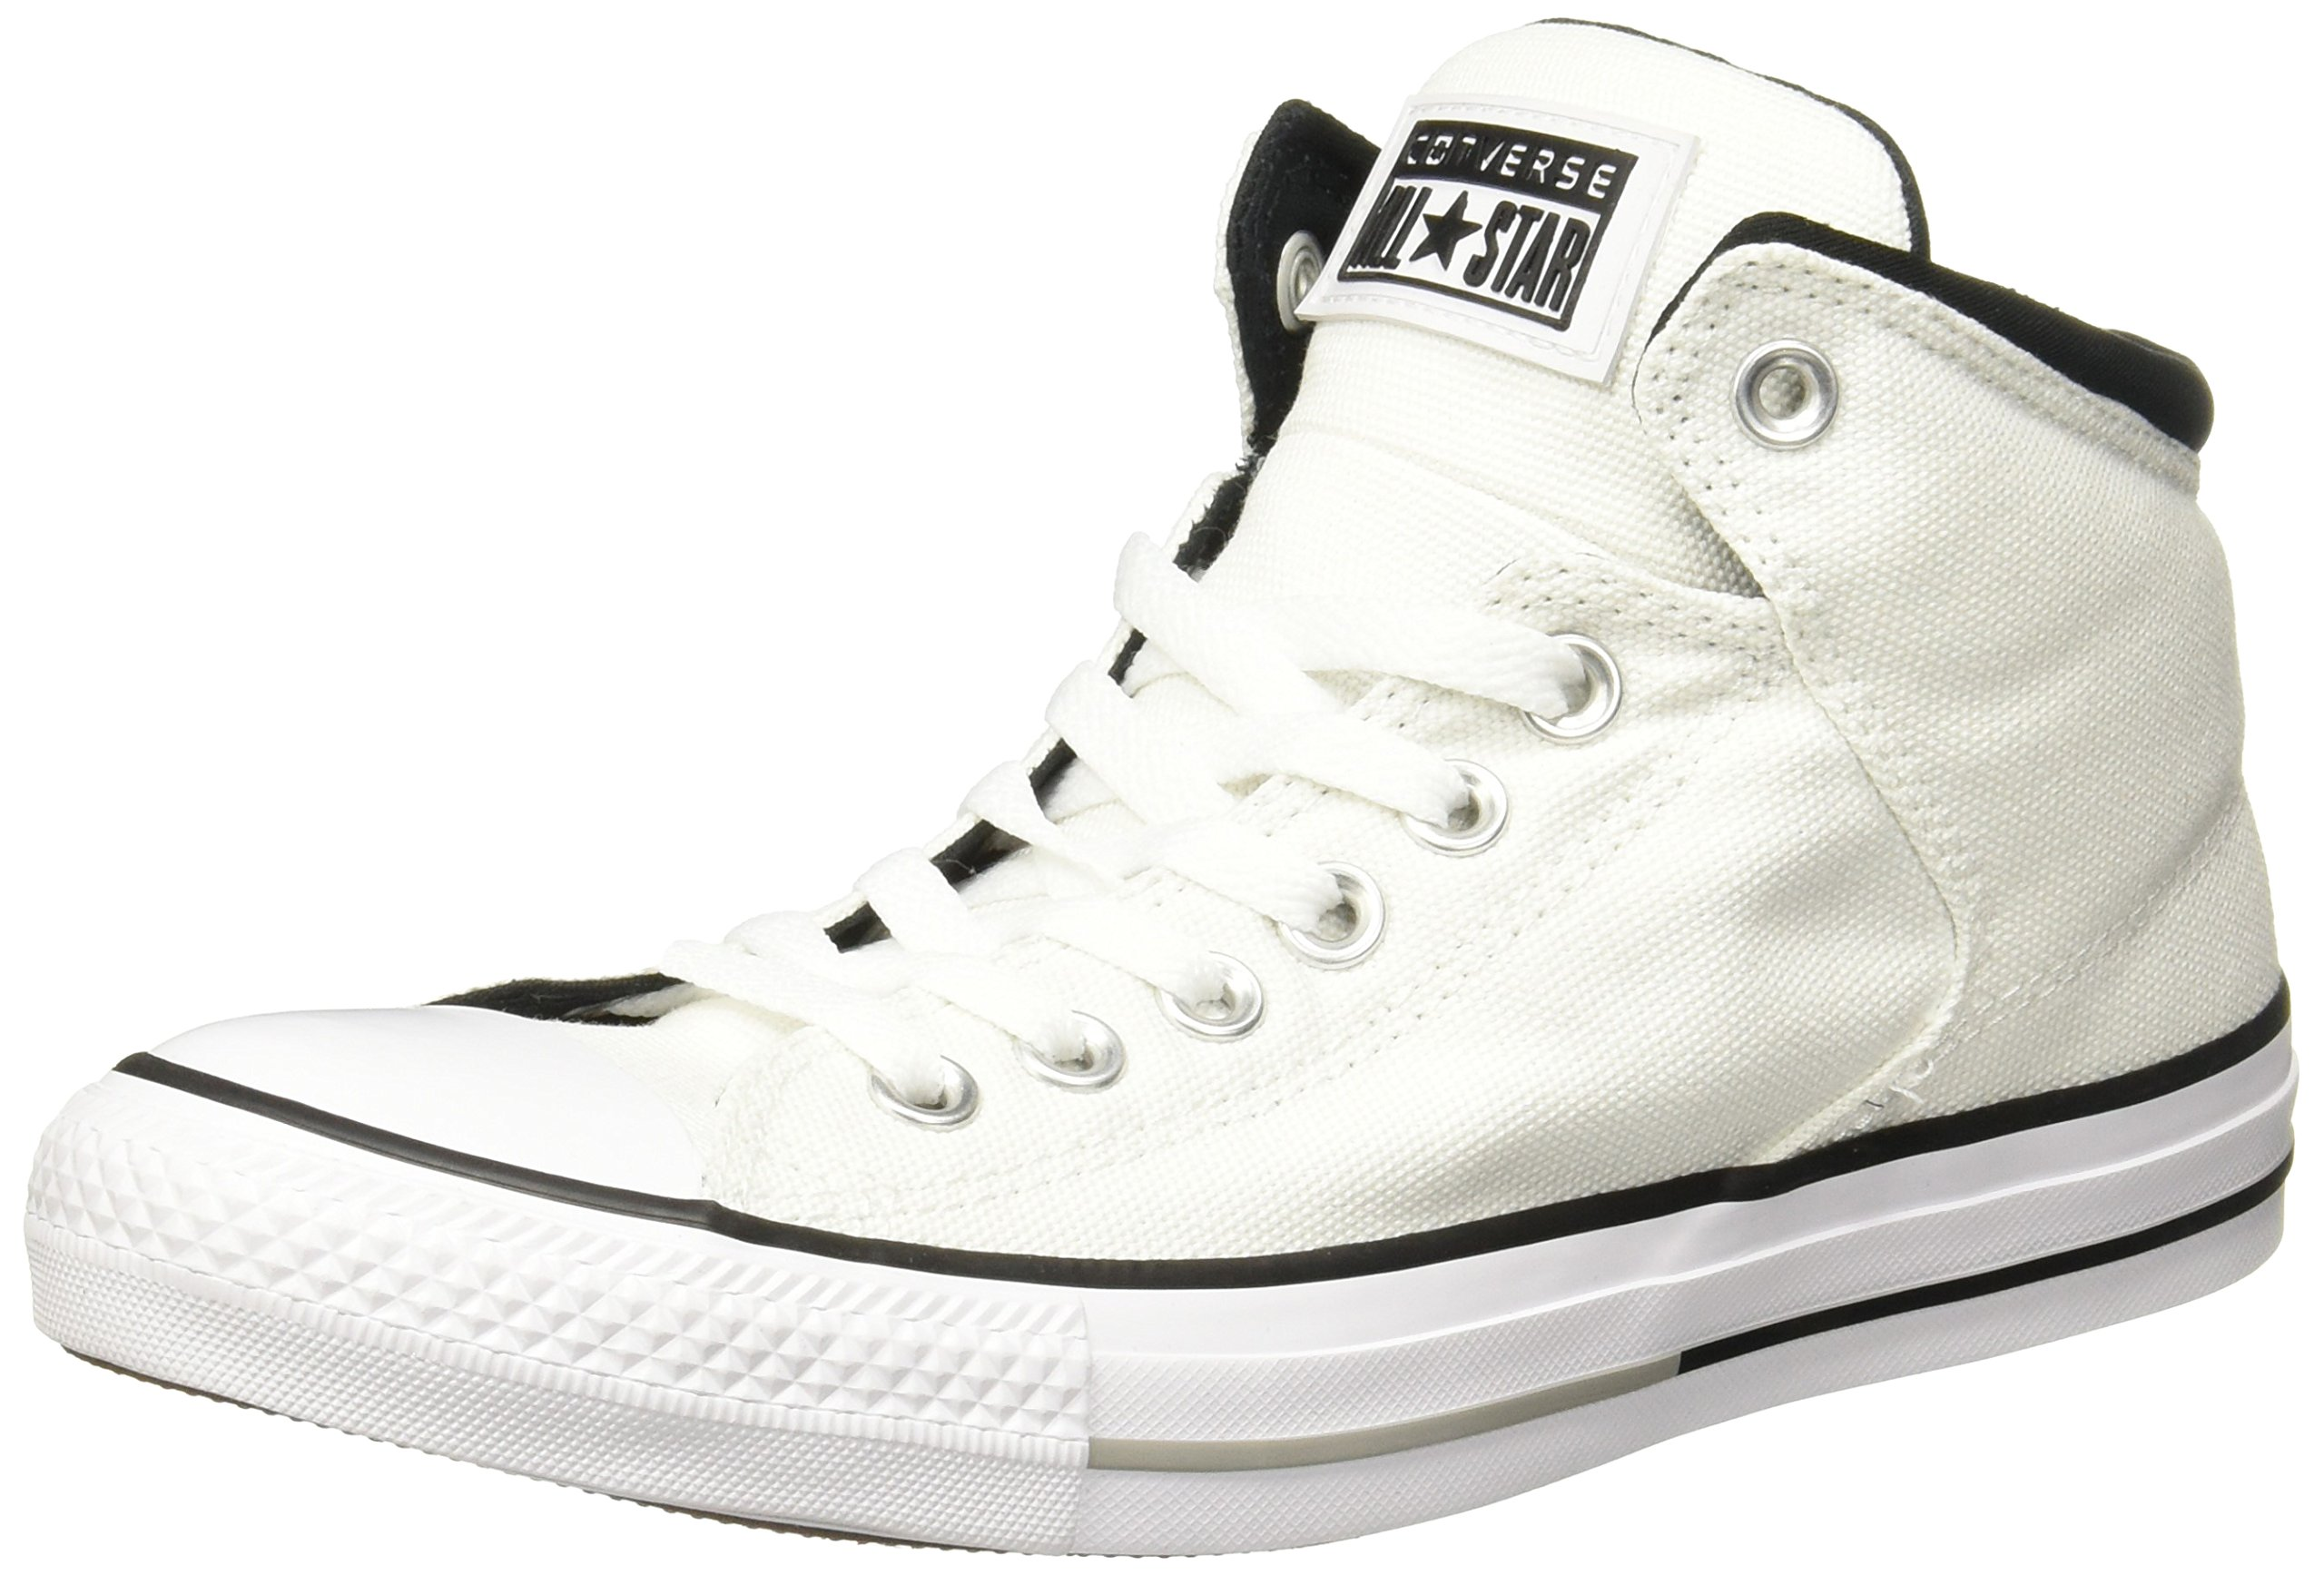 d80d3464d702 Galleon - Converse Chuck Taylor All Star High Street Hi Fashion Sneaker  Shoe - White Black White - Mens - 11